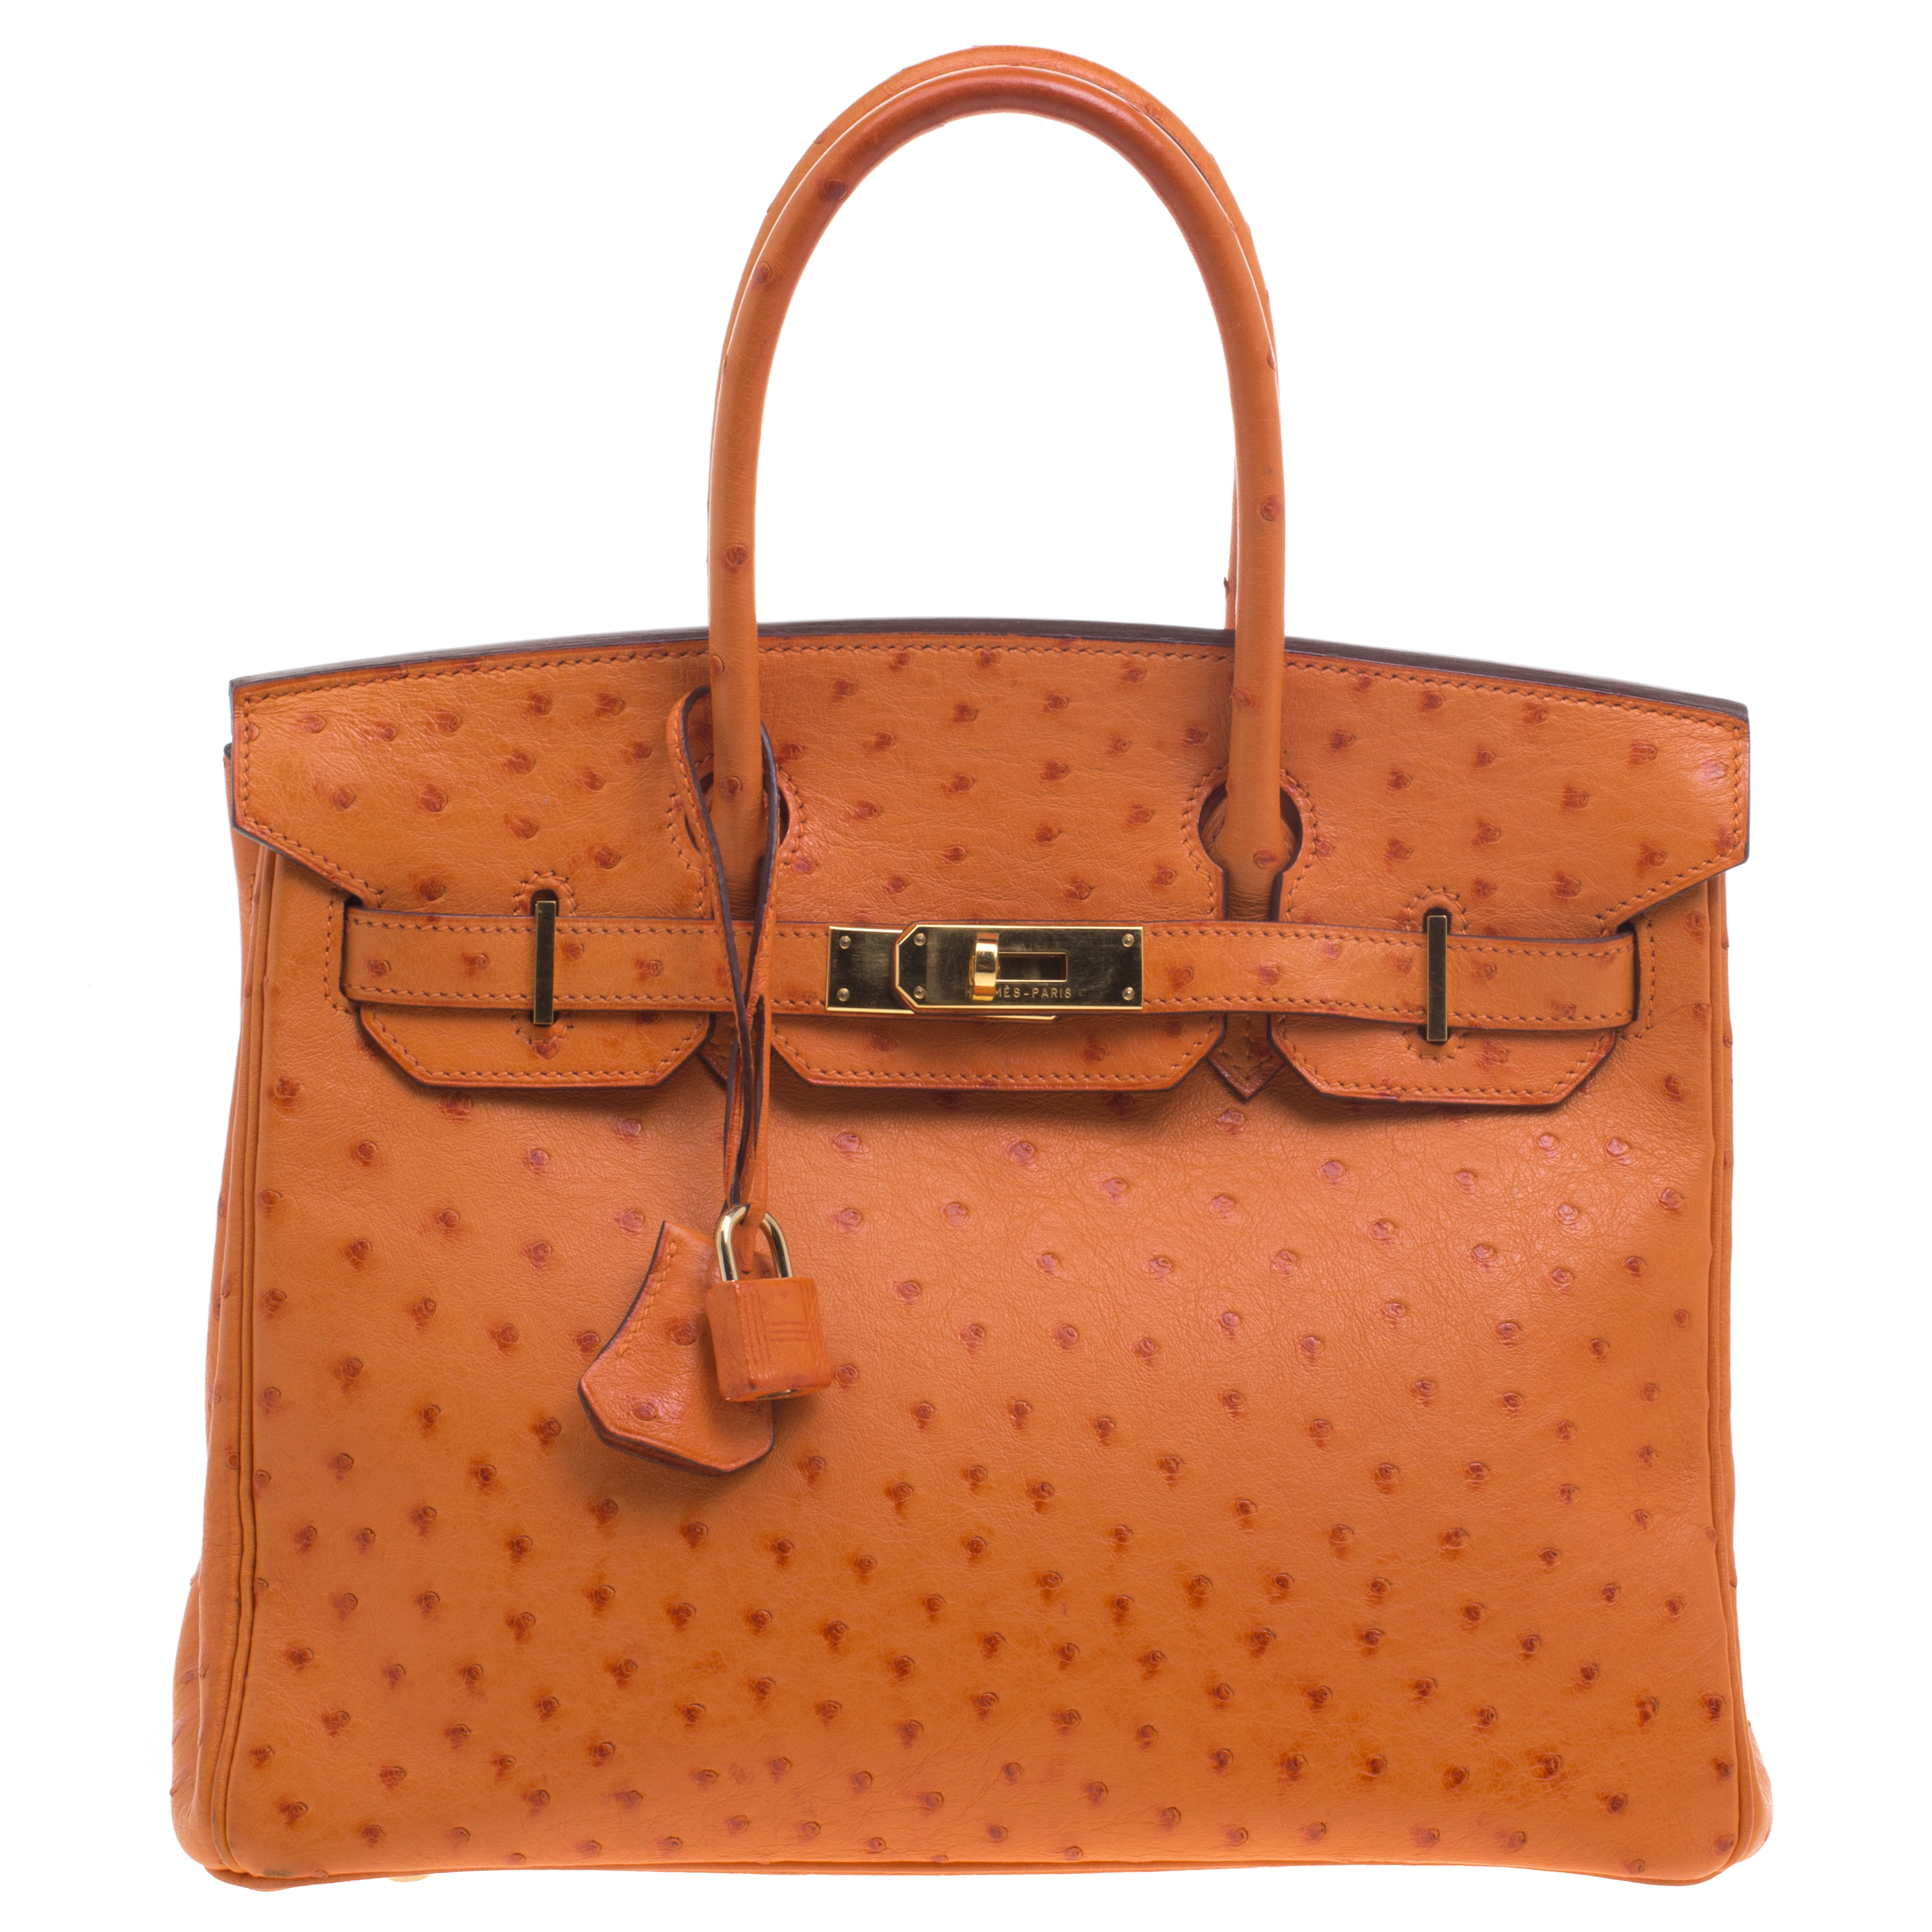 4f4d6bc225d9 ... Hermes Tangerine Ostrich Leather Gold Hardware Birkin 30 Bag. nextprev.  prevnext